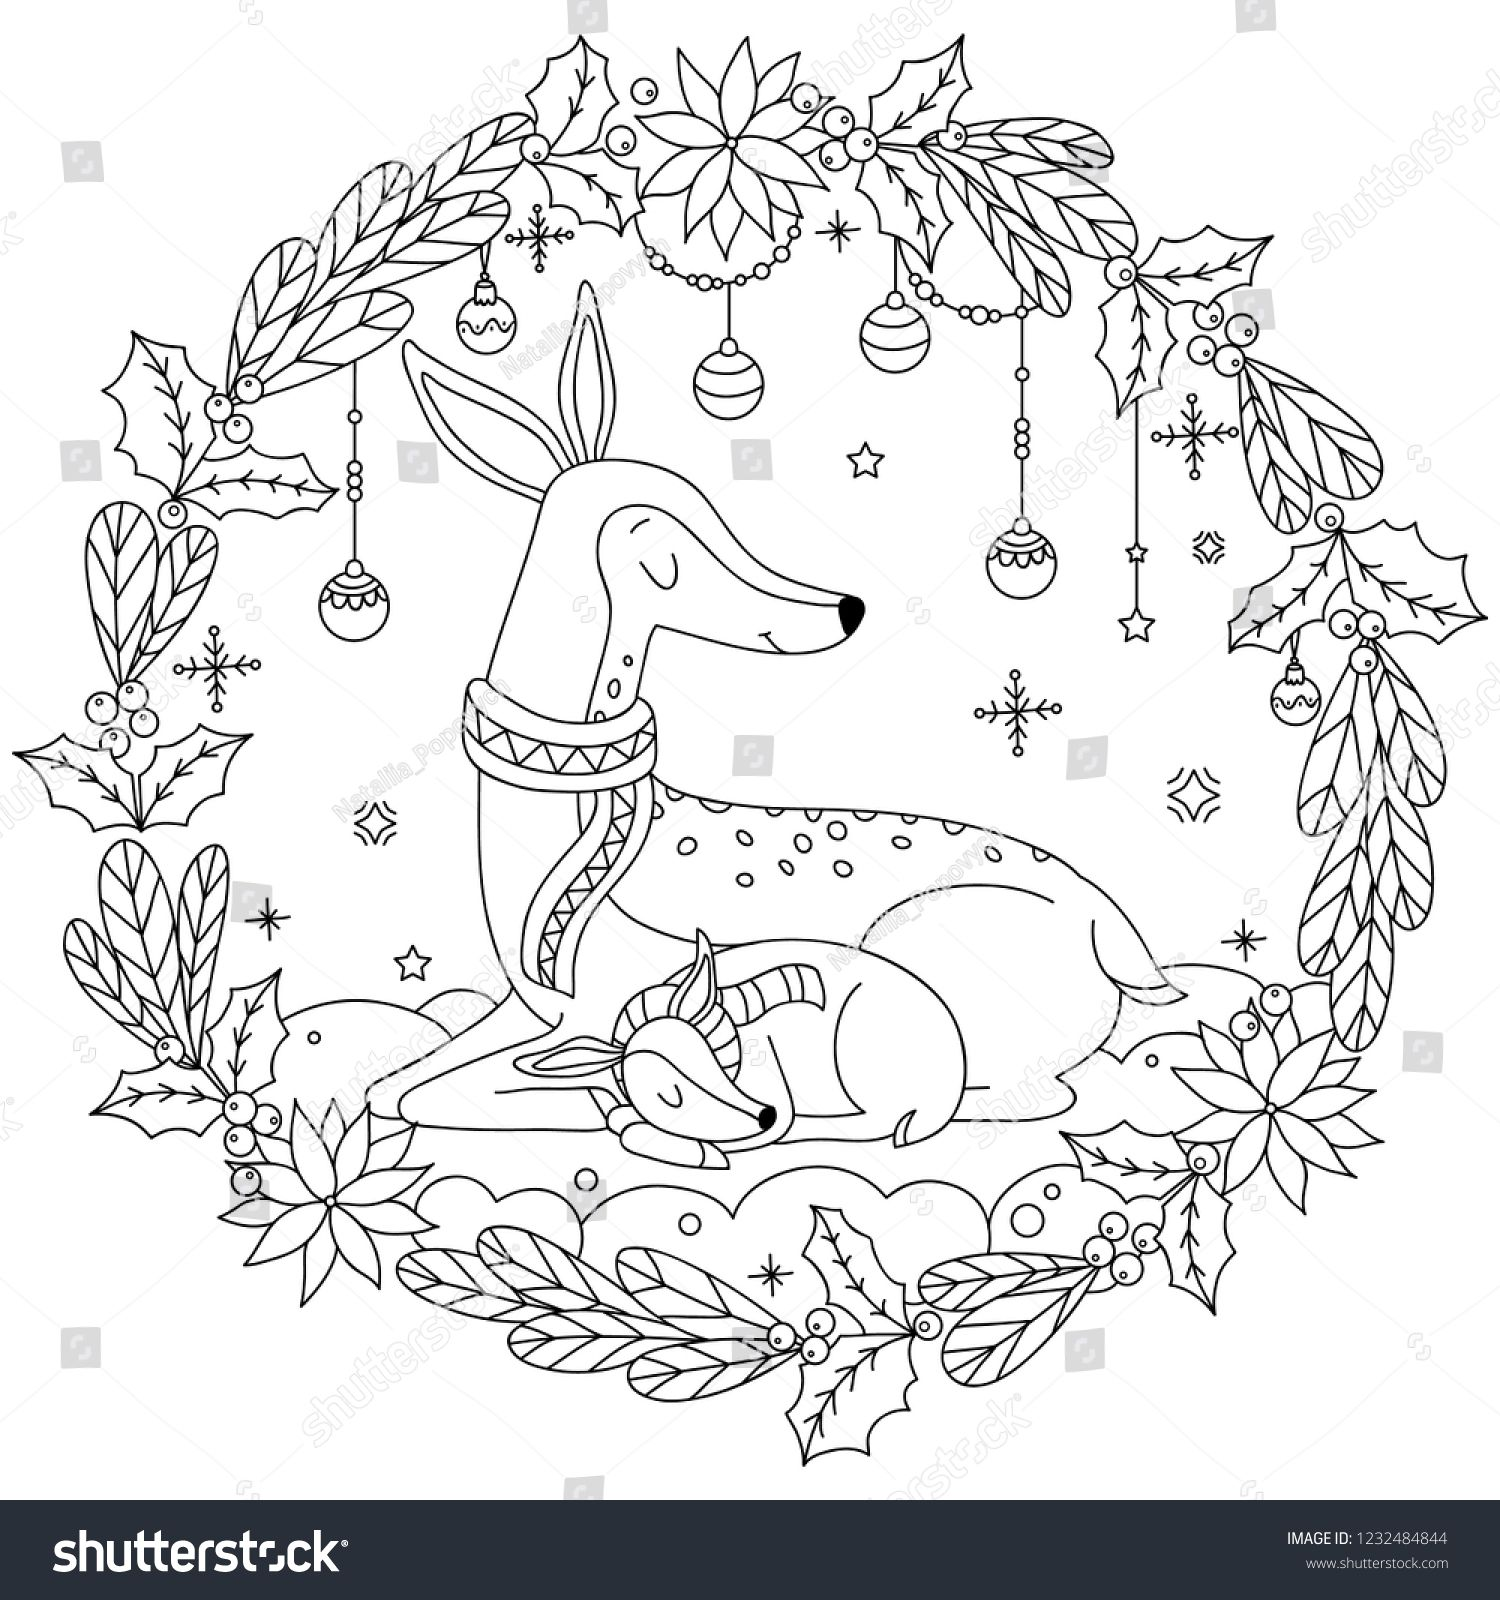 Cute Deers Sleeping On The Snow Mother Deer With Baby Deer Coloring Page Deer Coloring Book For Deer Coloring Pages Outline Illustration Blank Business Cards